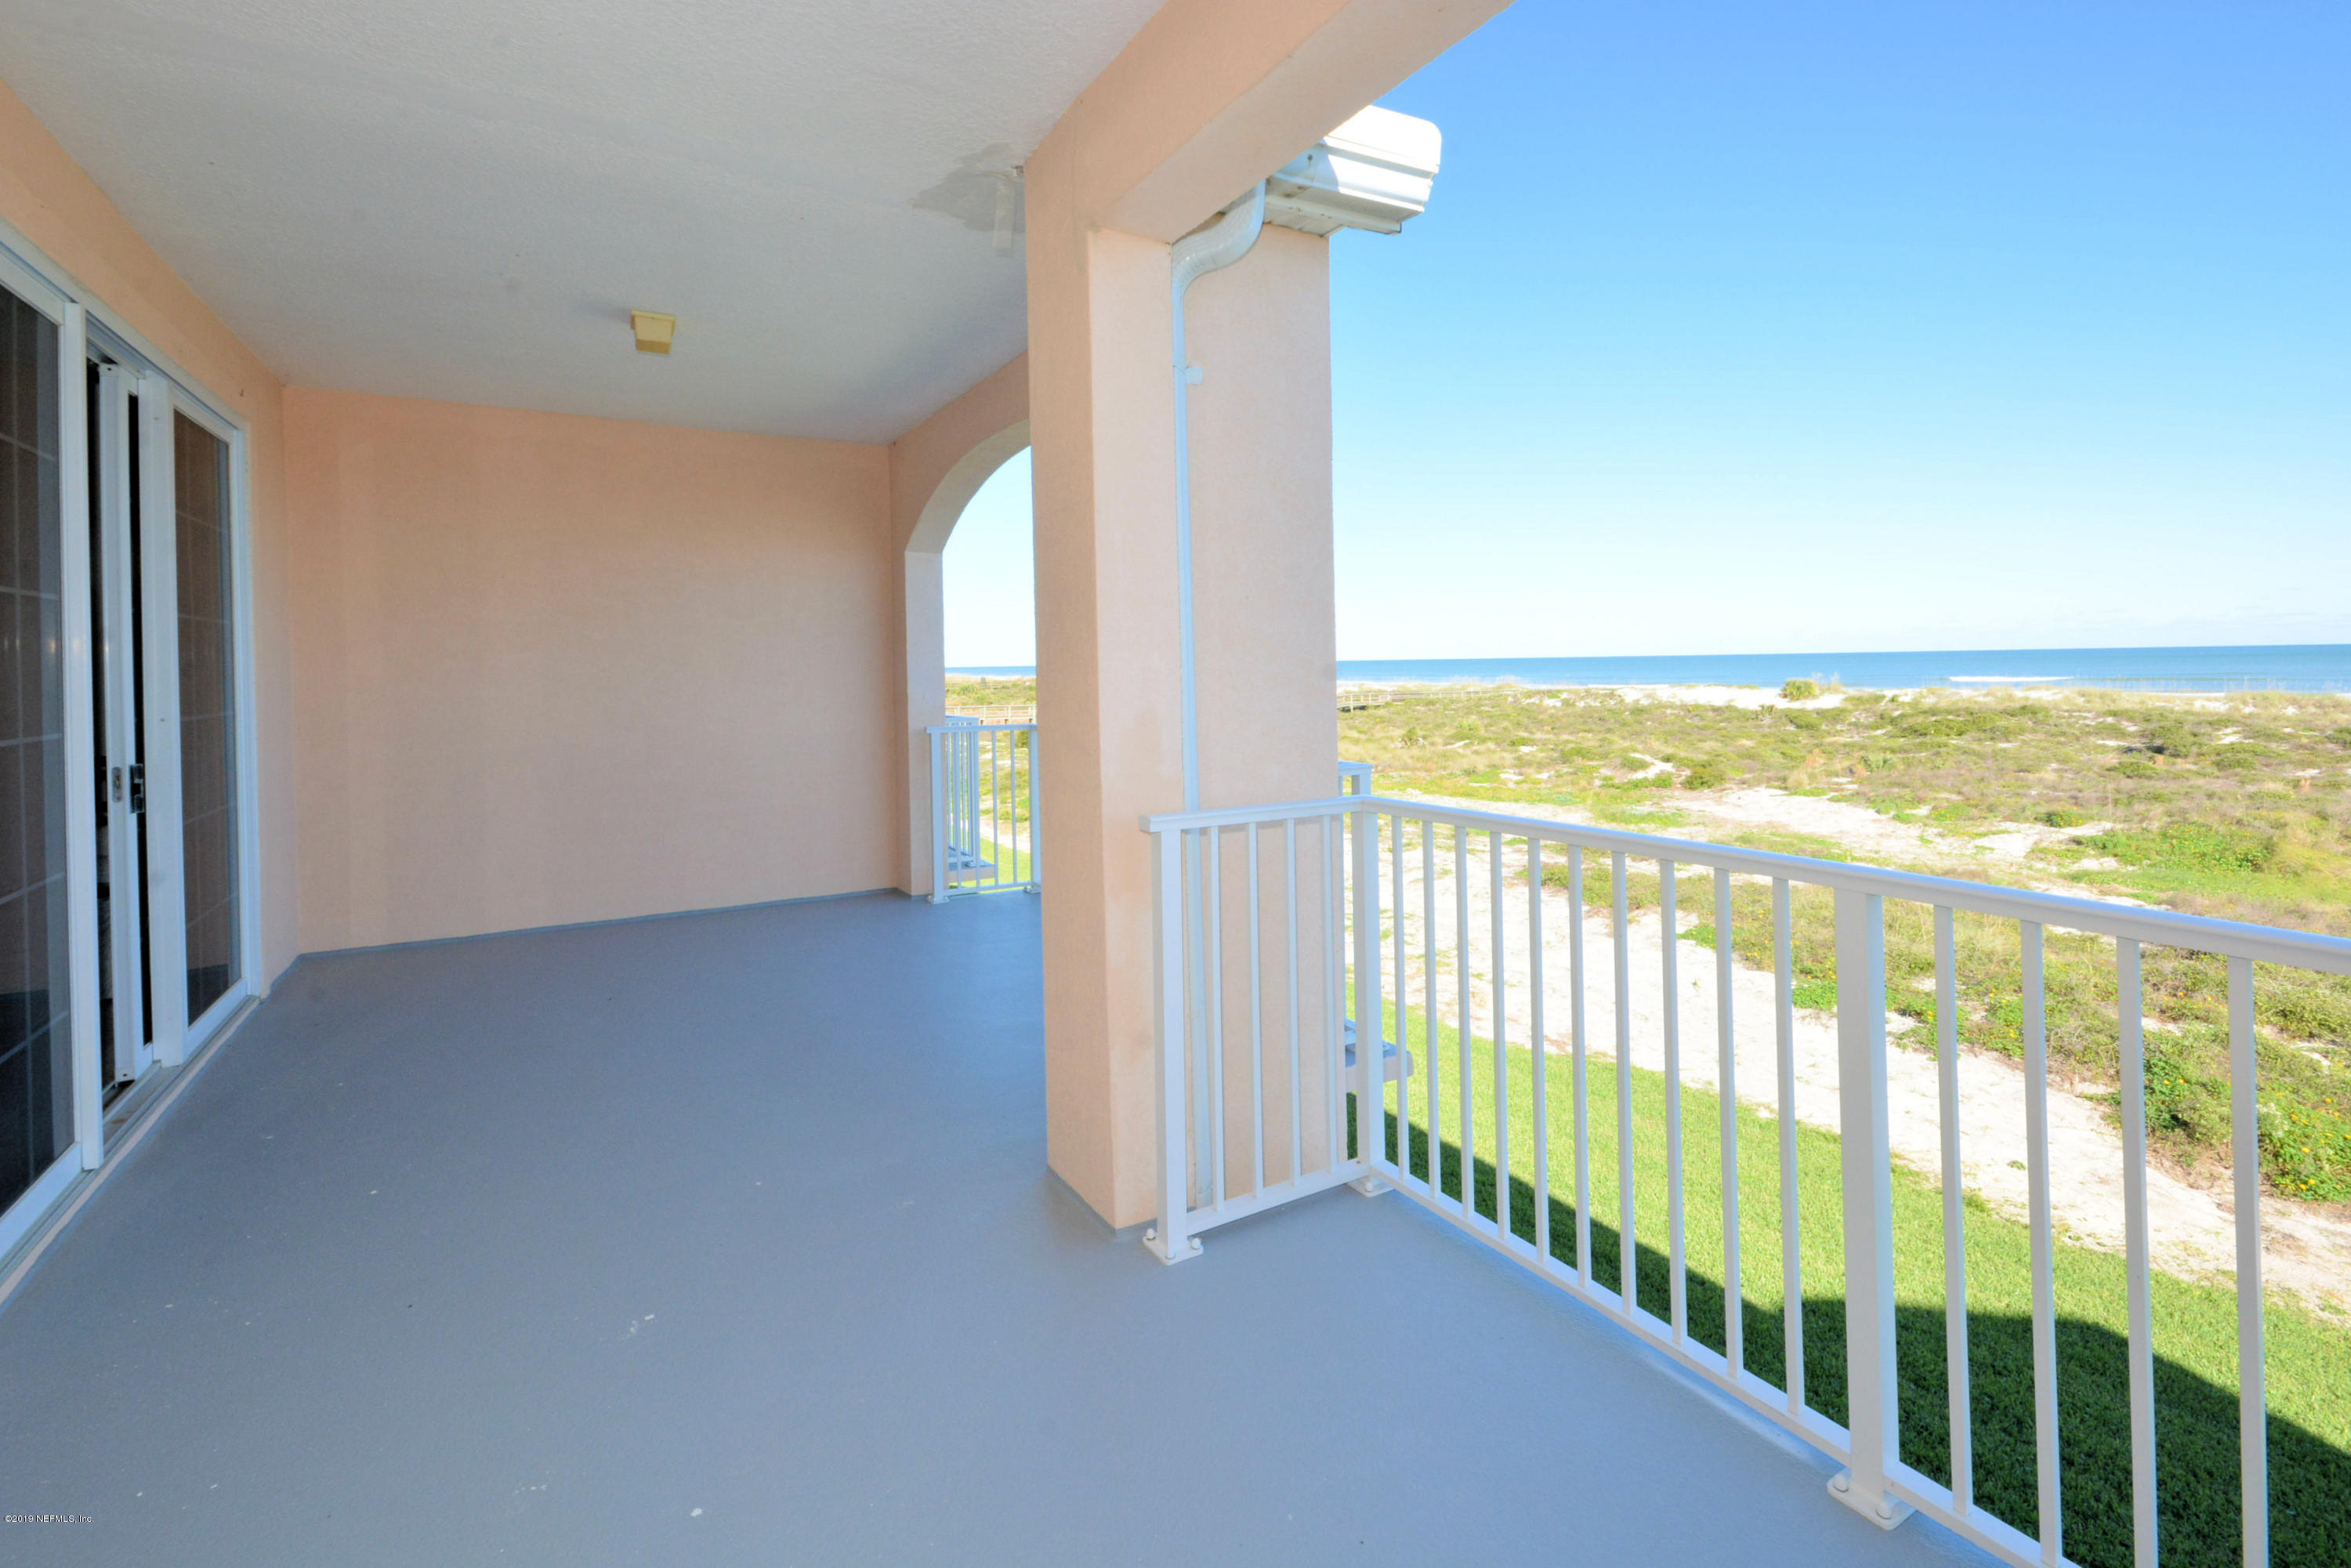 4320 OCEANHOMES, ST AUGUSTINE, FLORIDA 32080, 3 Bedrooms Bedrooms, ,3 BathroomsBathrooms,Residential,For sale,OCEANHOMES,1053565